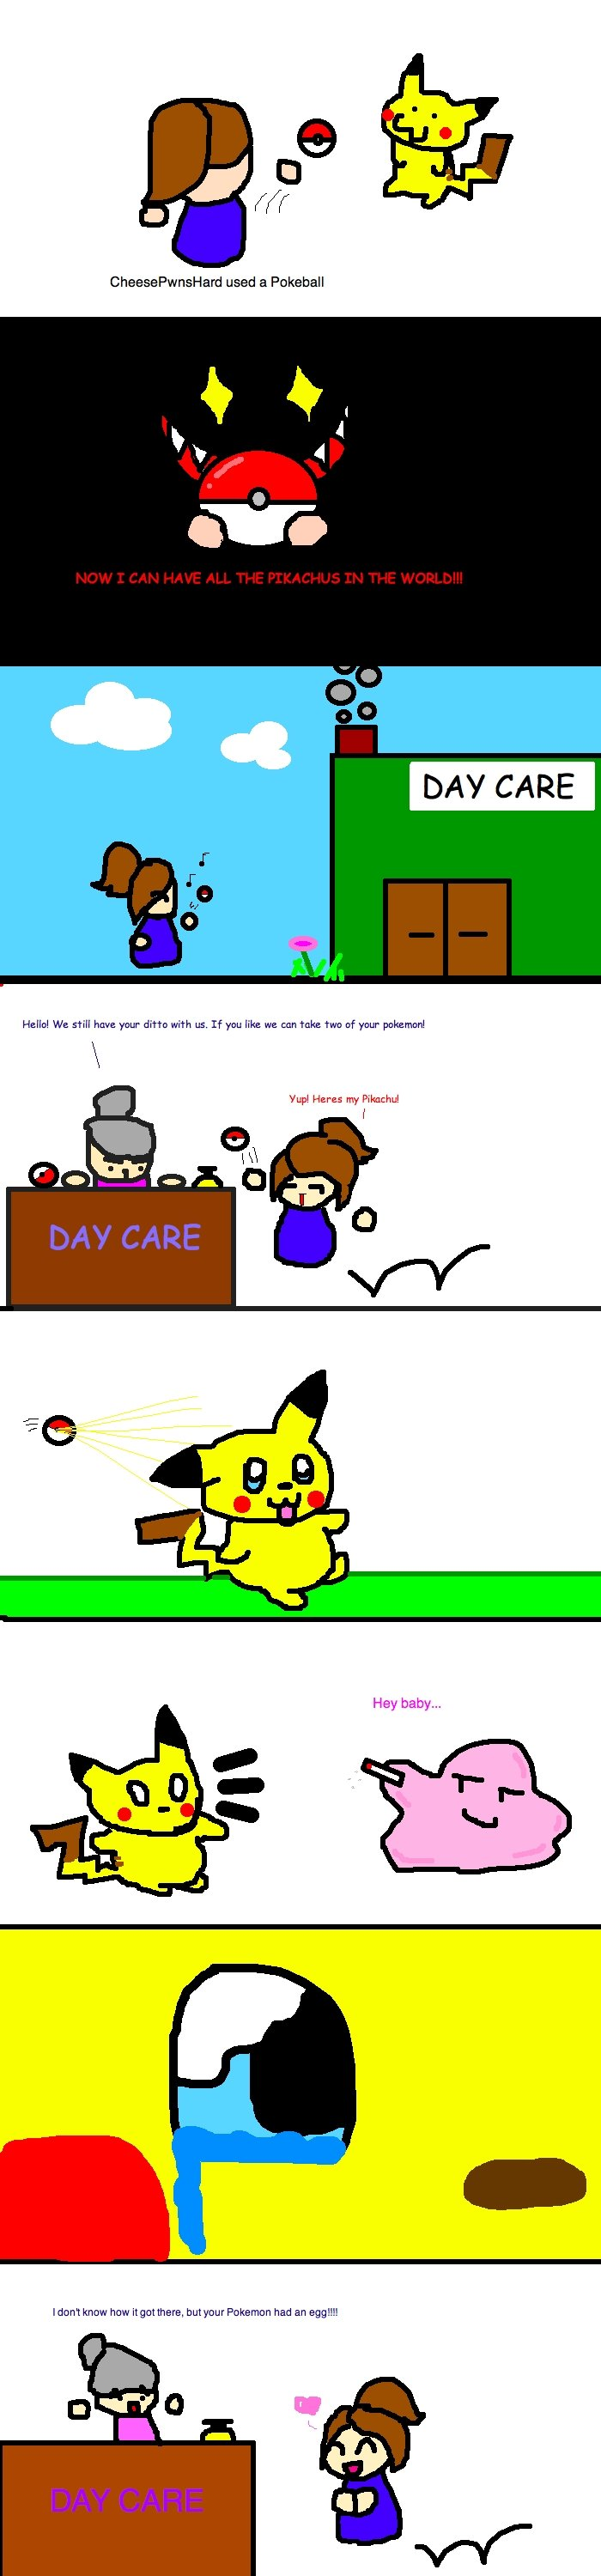 The Day Care. I always thought ditto was a hooker...<br /> Hope you guys like!!!. Cheesepwnshard used a Faceball Hey baby... Mont know new human! Pokeman